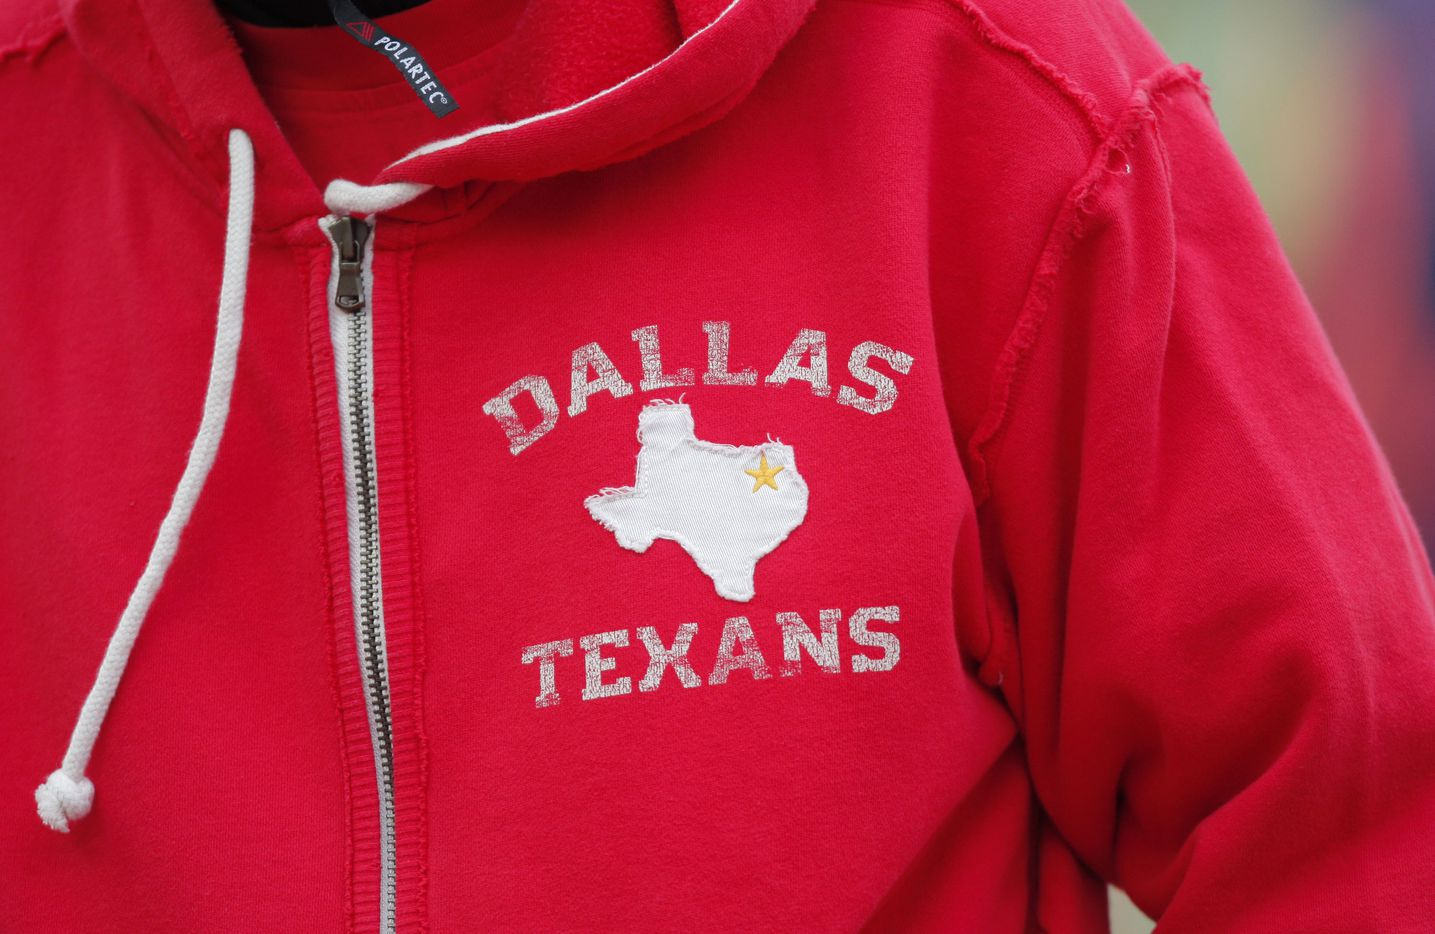 Kansas City Chiefs coaches wore Dallas Texans throwback zipper hoodies for an October 2009 game against the Dallas Cowboys at Arrowhead Stadium in Kansas City, Mo. The franchise was founded as the Dallas Texans by oil magnate Lamar Hunt, who moved the franchise to Kansas City in 1963.